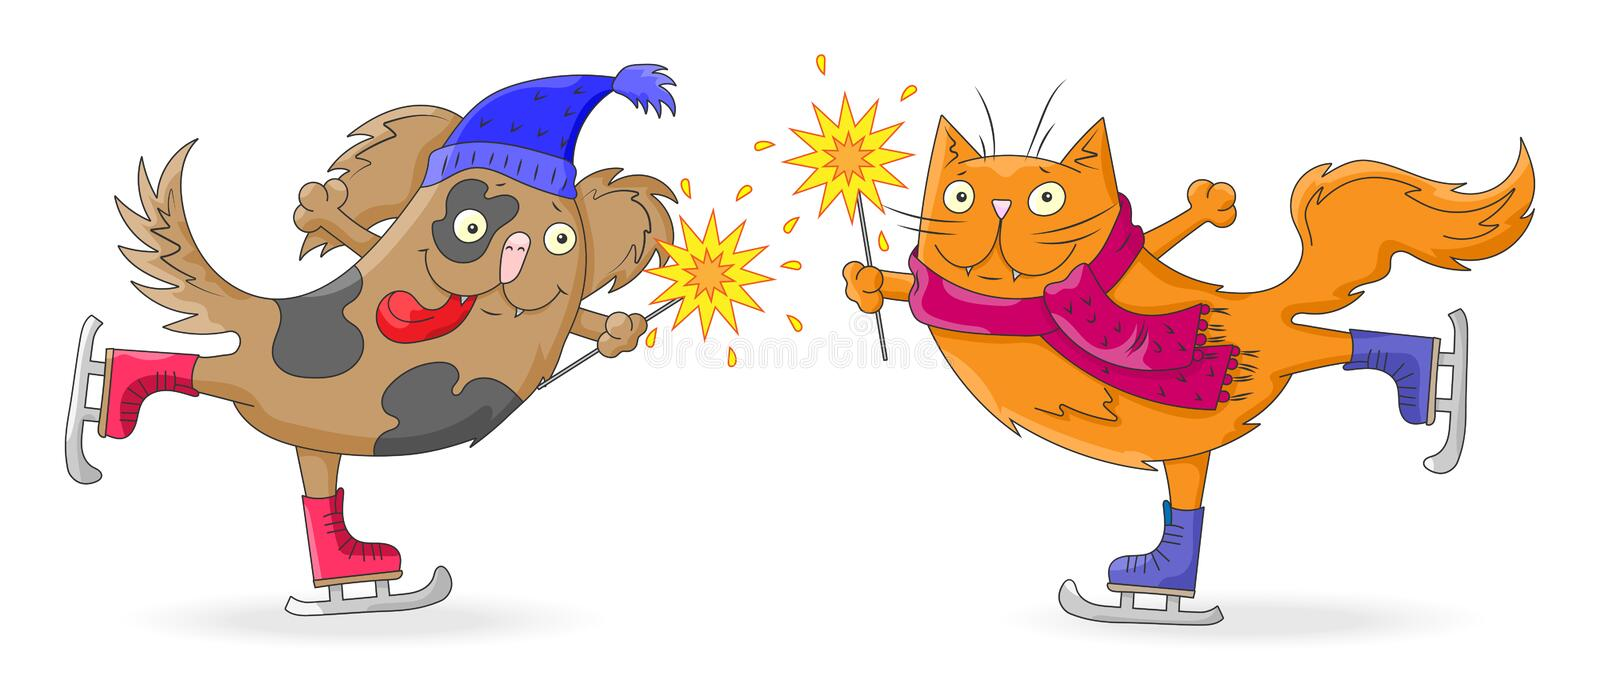 Cartoon Illustration for new year and Christmas cartoon funny cat and dog skate with sparklers in hand , isolated on white backgro. Illustration for new year and stock illustration